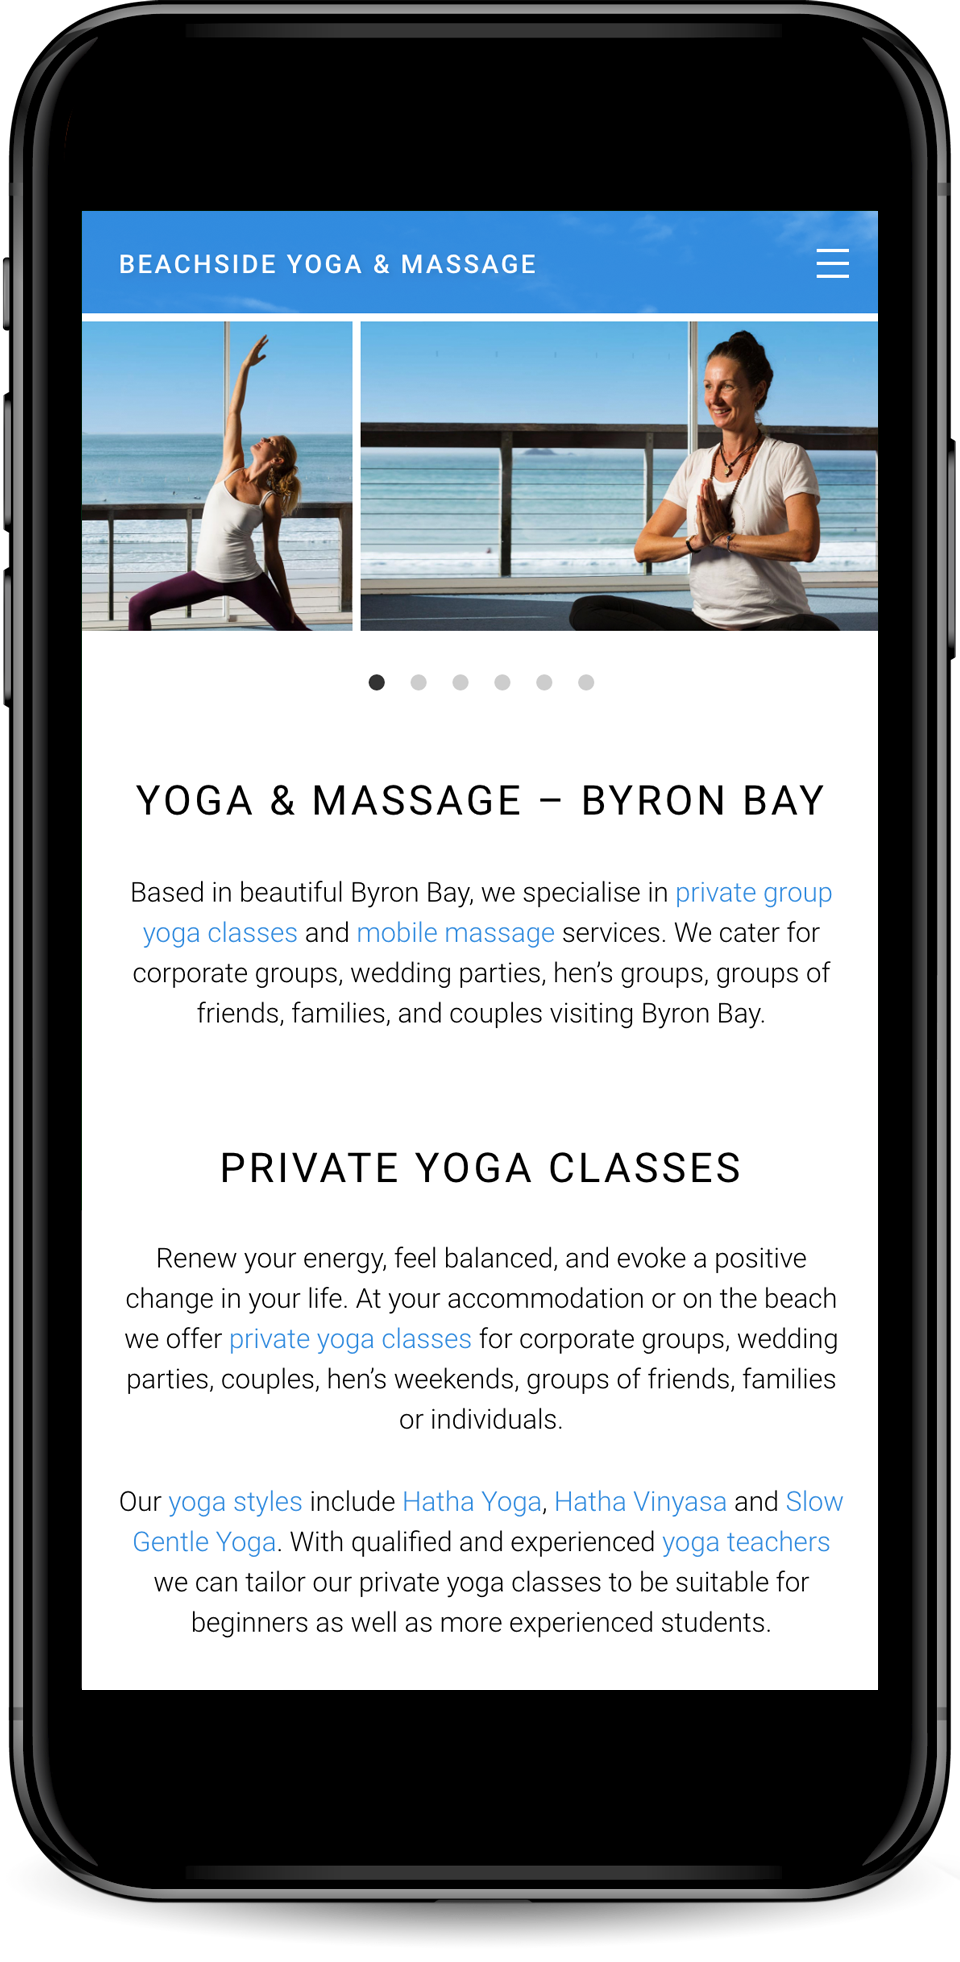 Web design for Beachside Yoga & Massage, Byron Bay - mobile view.